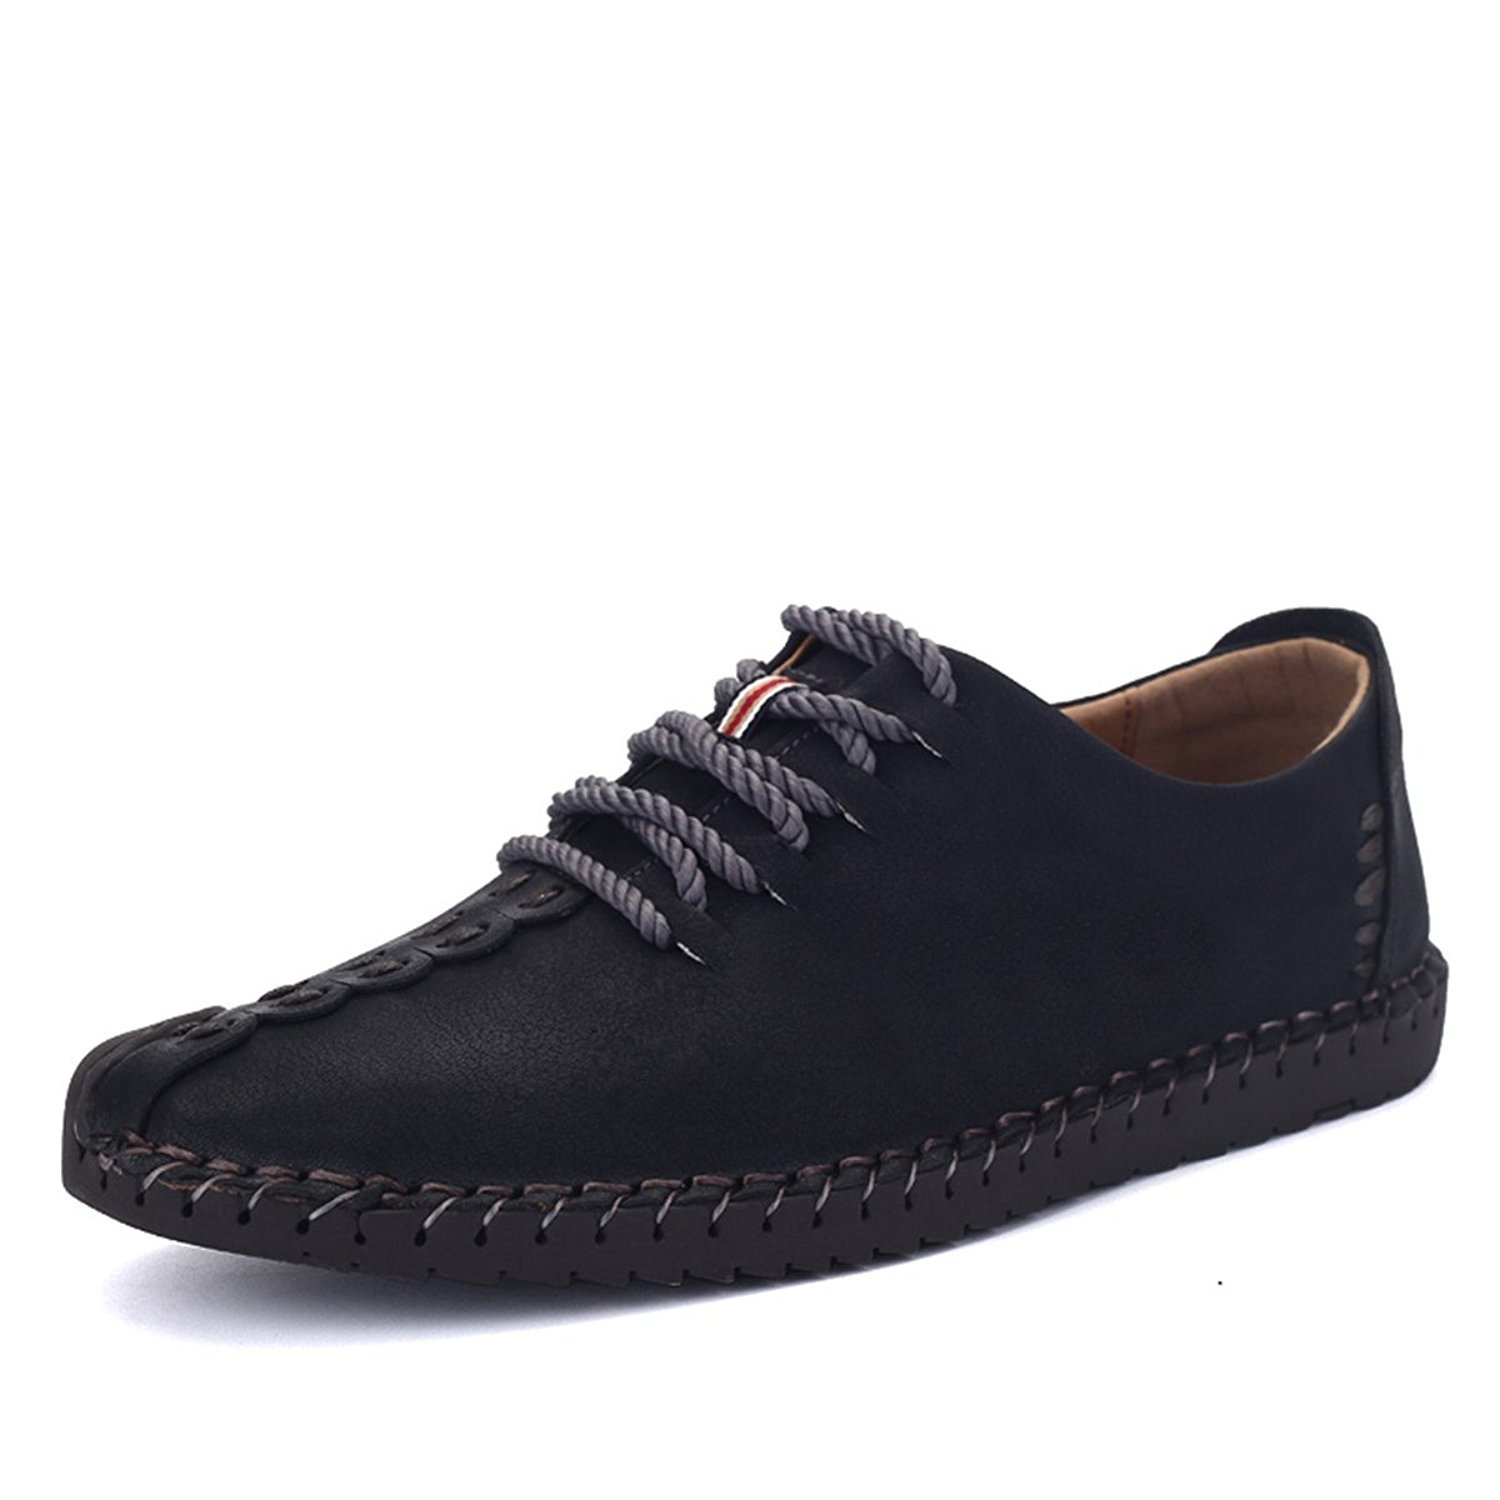 Tezoo Men's British Style Handmade Classic Leather Oxford Flats Shoes, Casual Shoes, Lace-up Loafers, Flats Sneakers Black 10 US